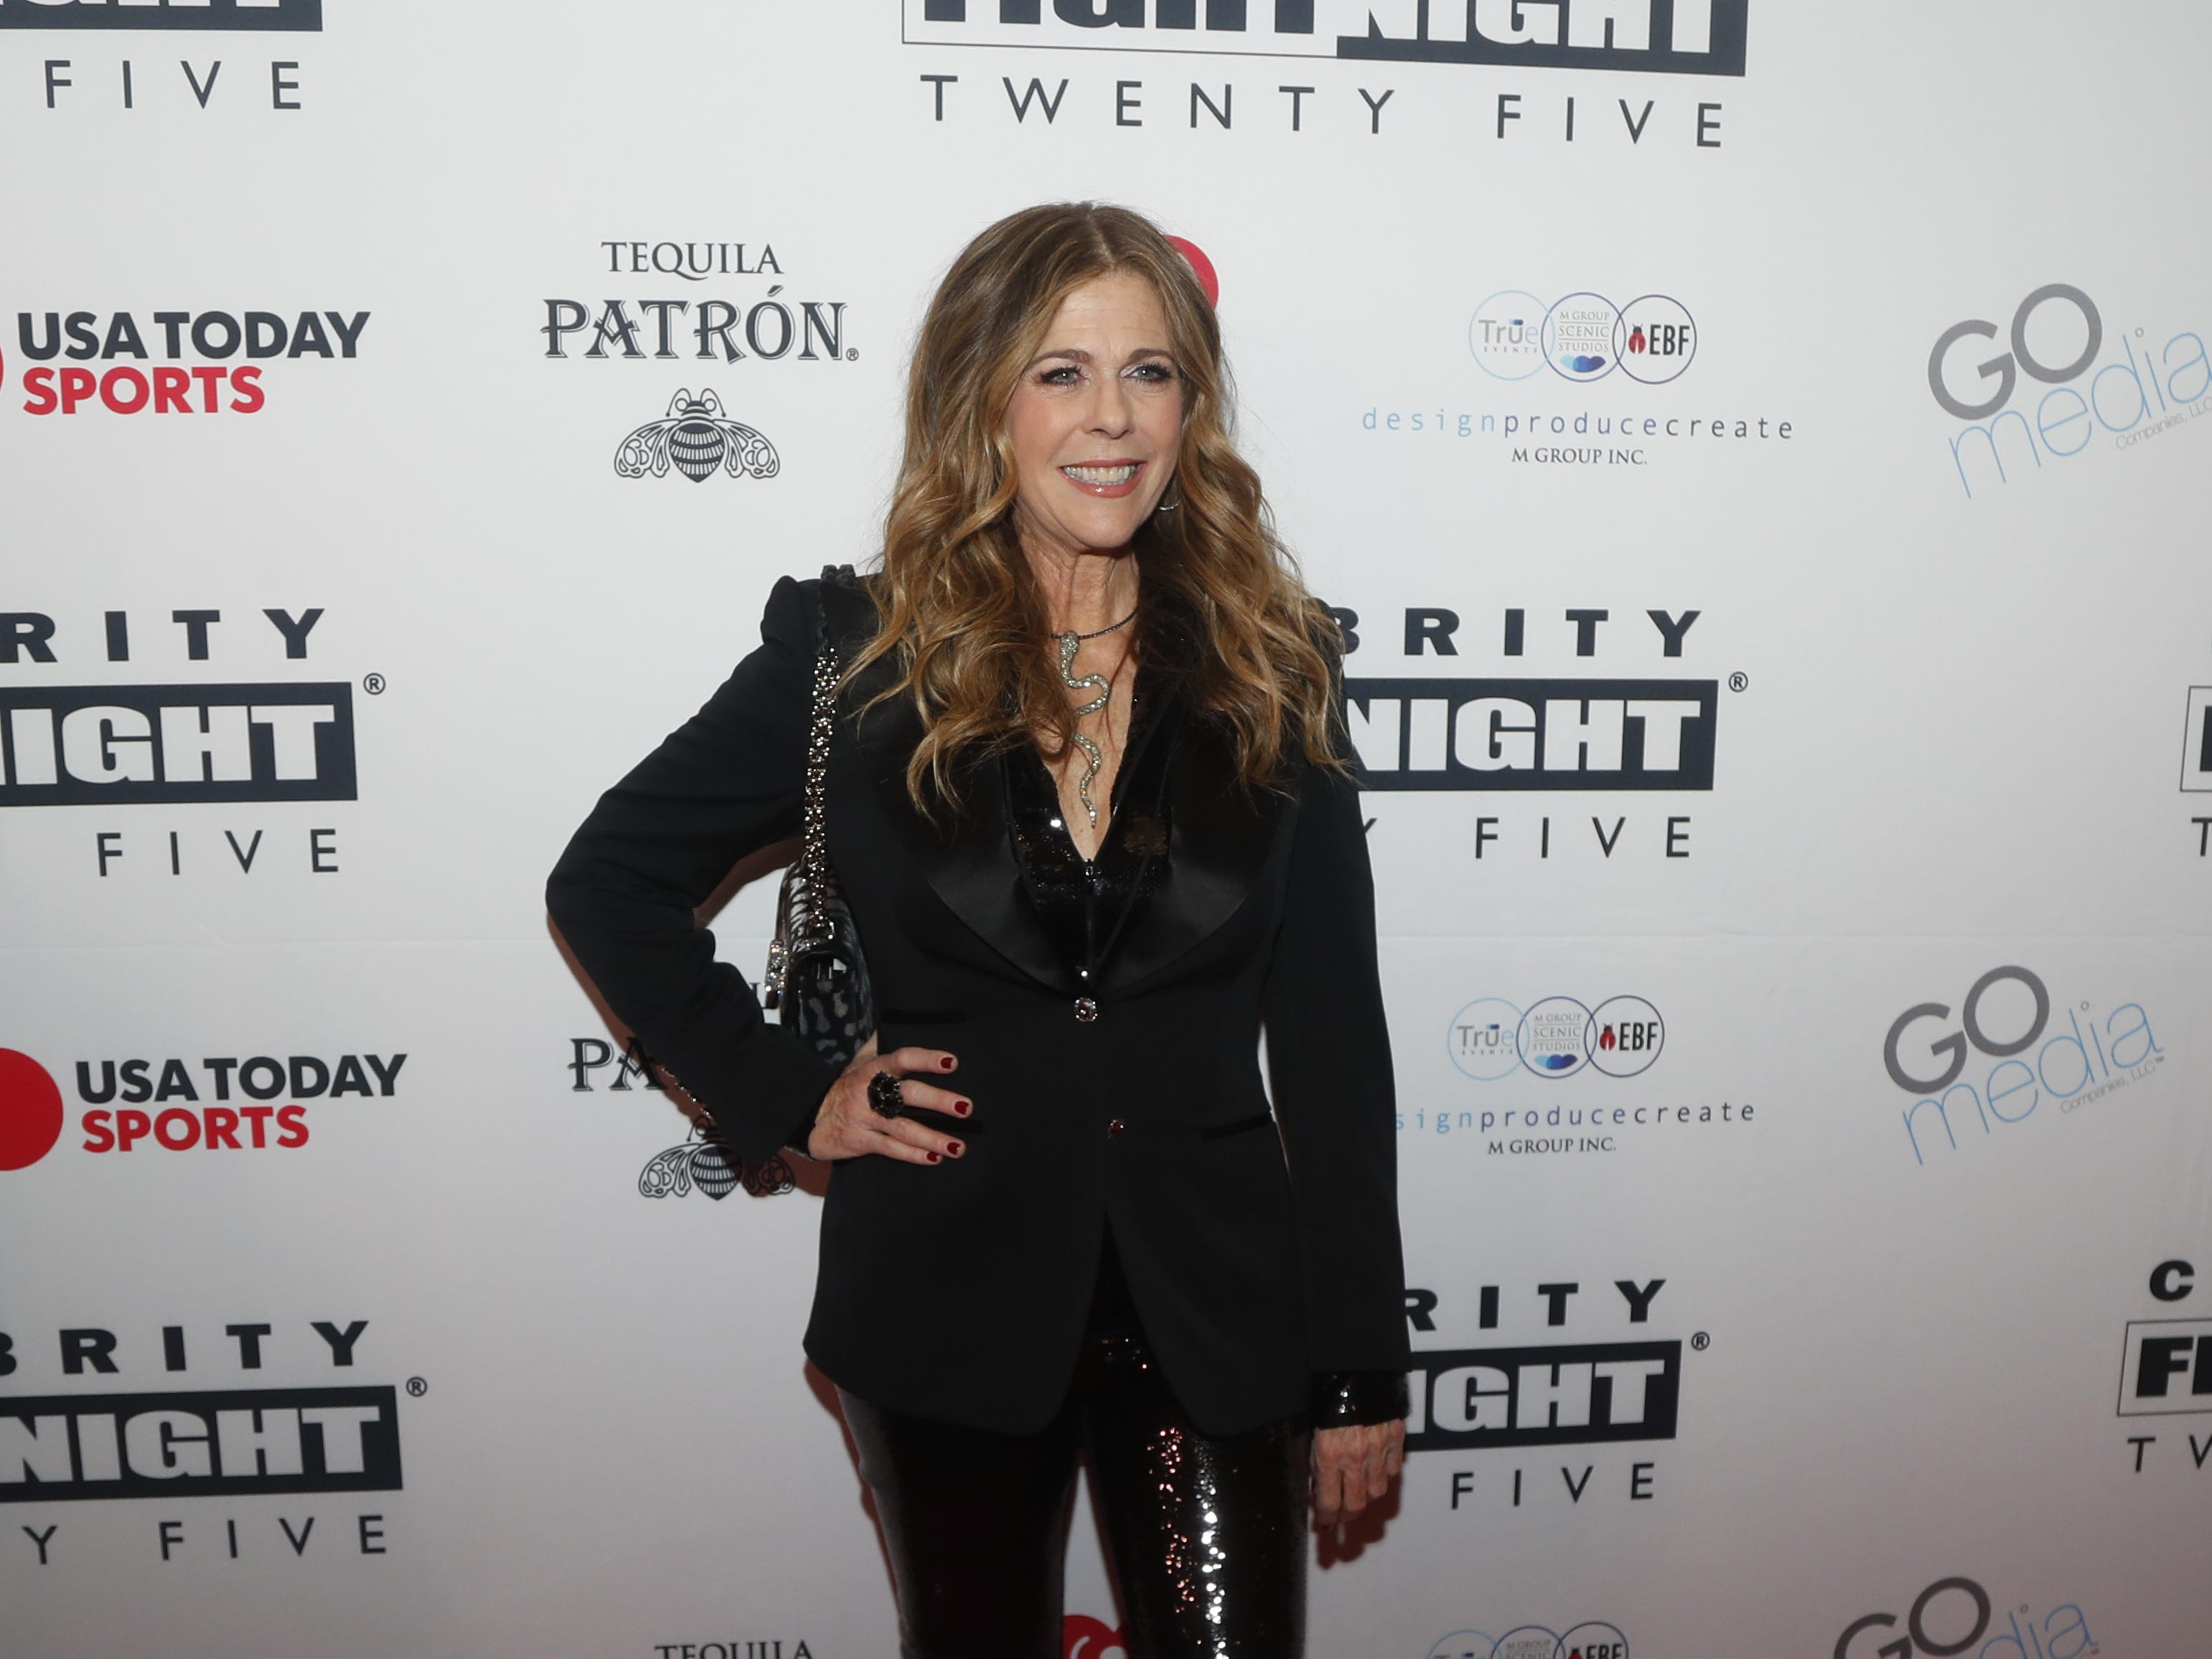 Rita Wilson poses for pictures during the Celebrity Fight Night red carpet in Scottsdale, Ariz., on March 23, 2019.